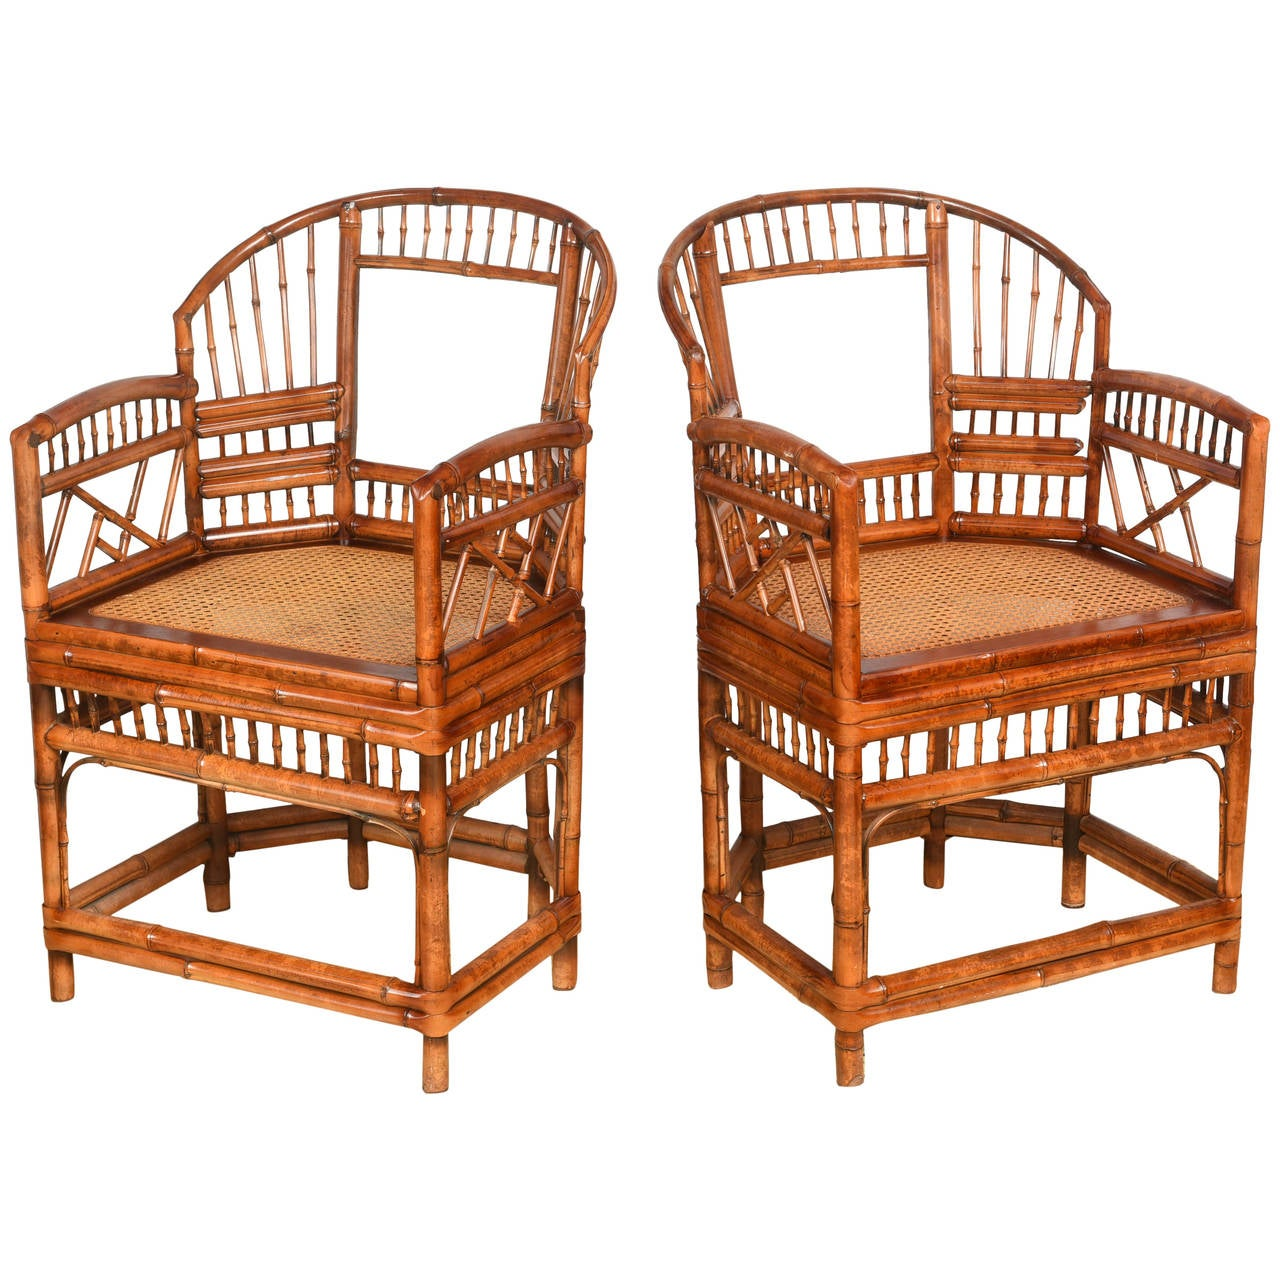 cane chairs for sale chair babies pair of vintage bamboo with seats at 1stdibs